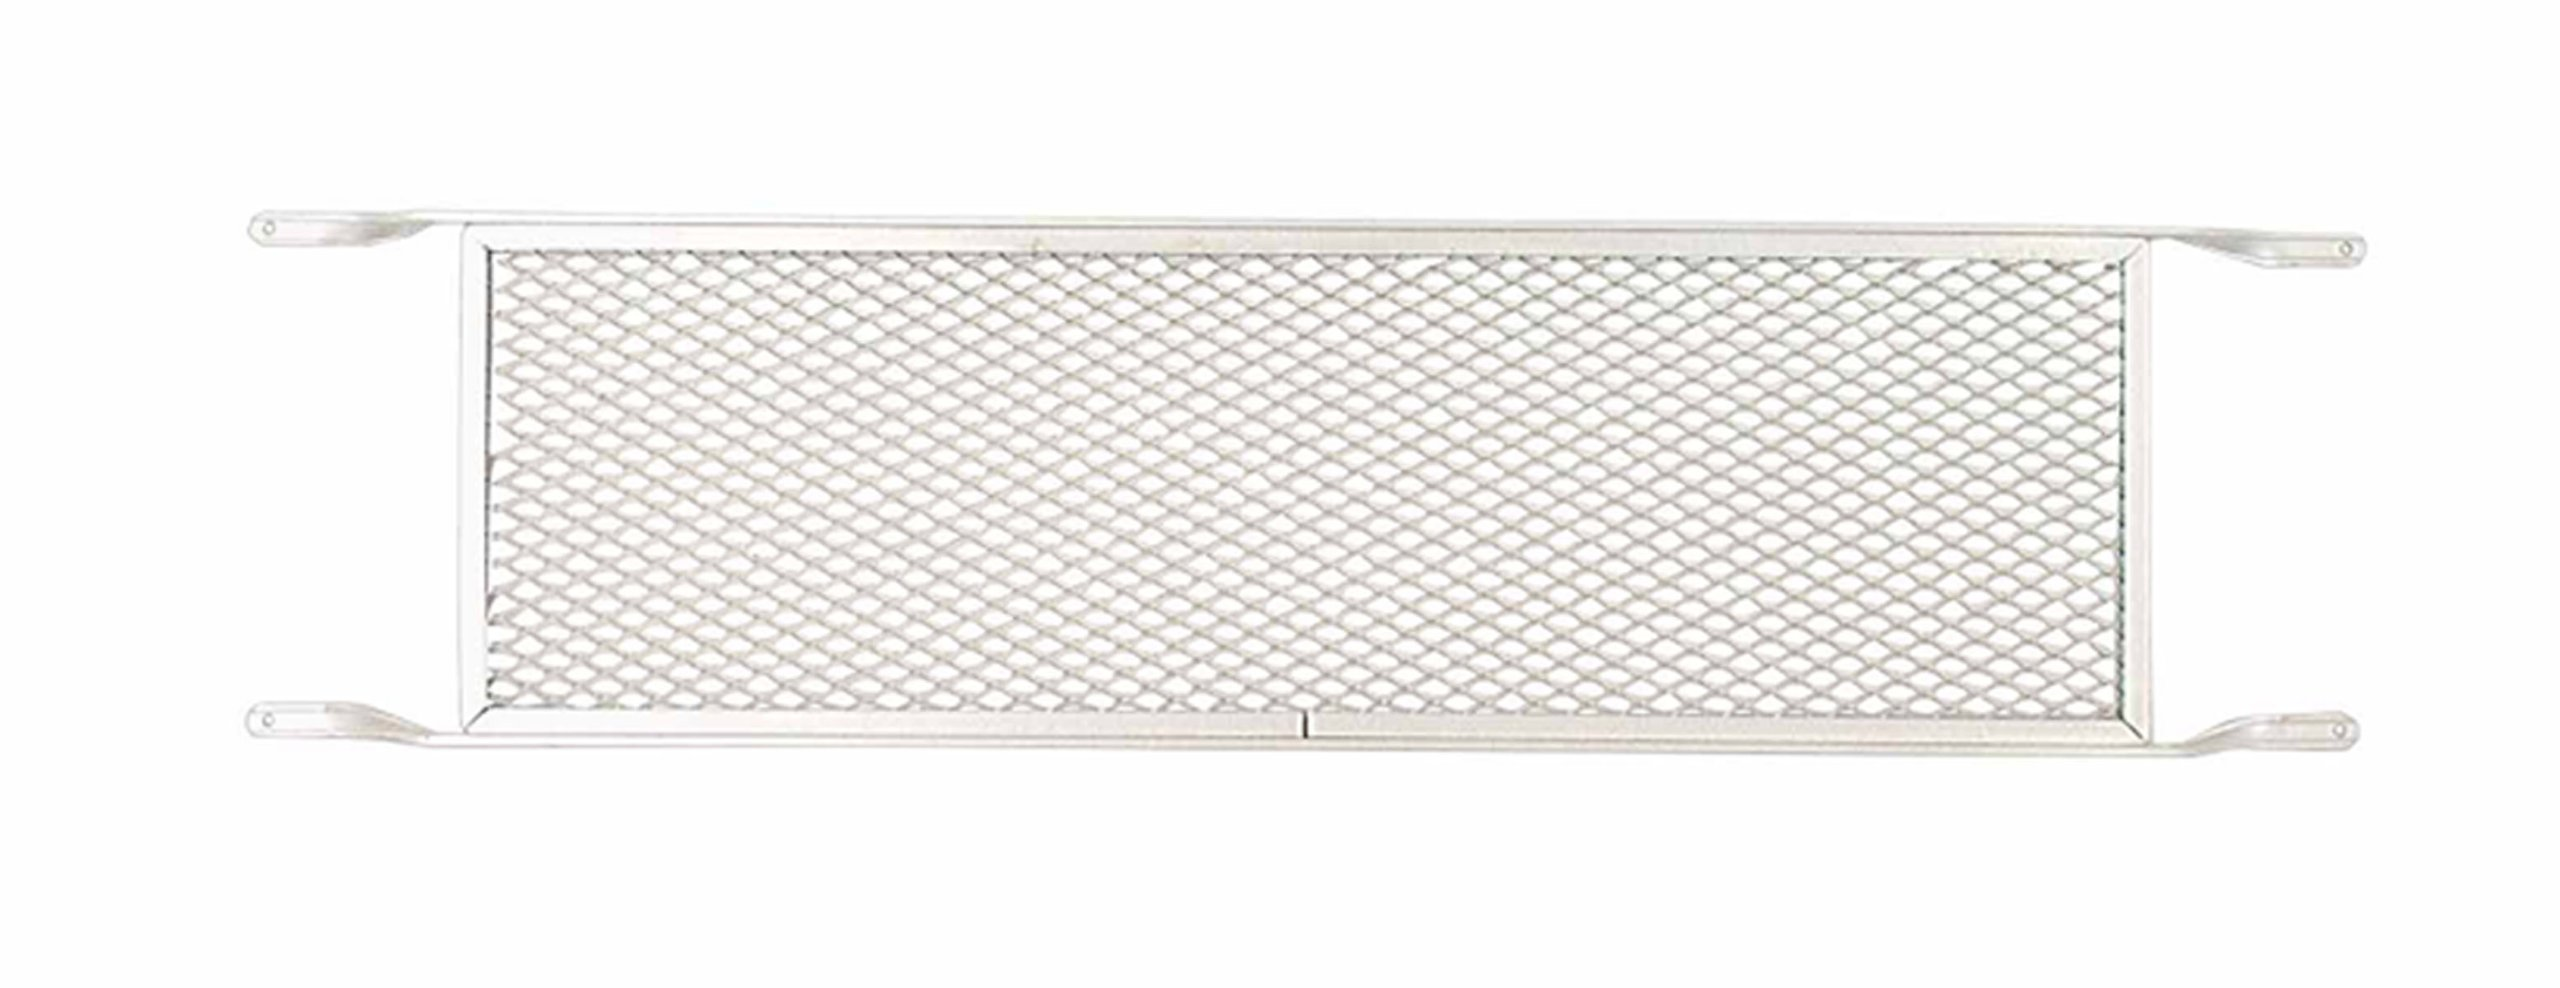 M-D Building Products 33209 M-D Push Door Grill, 36 in H X 8 in W, Aluminum, Mill by M-D Building Products